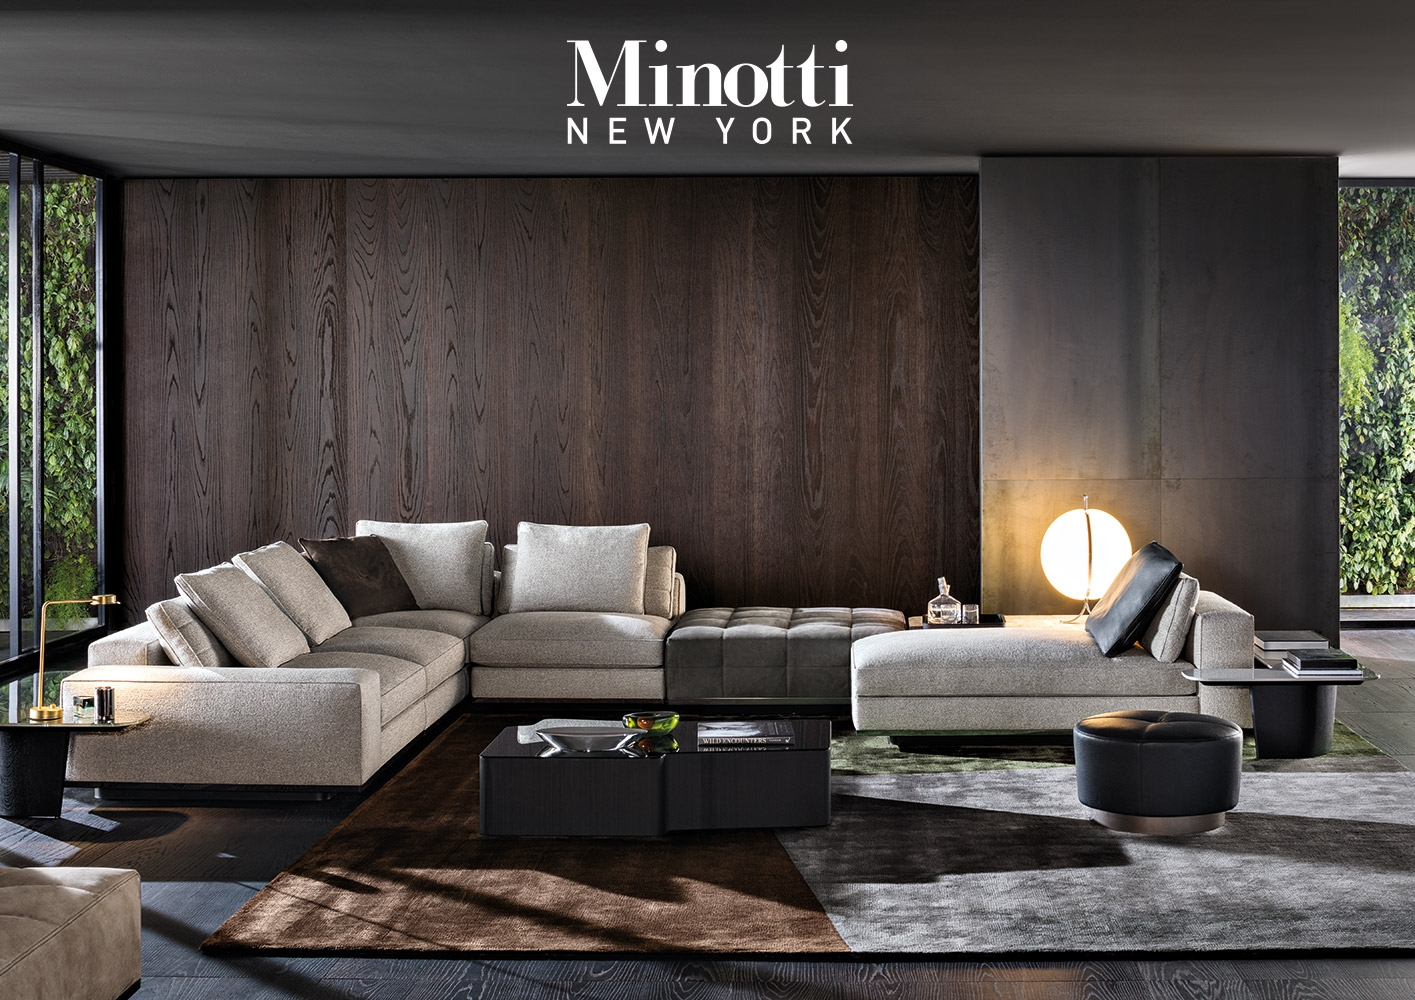 Merveilleux Minotti New York, Presentation Of The 2017 Collection